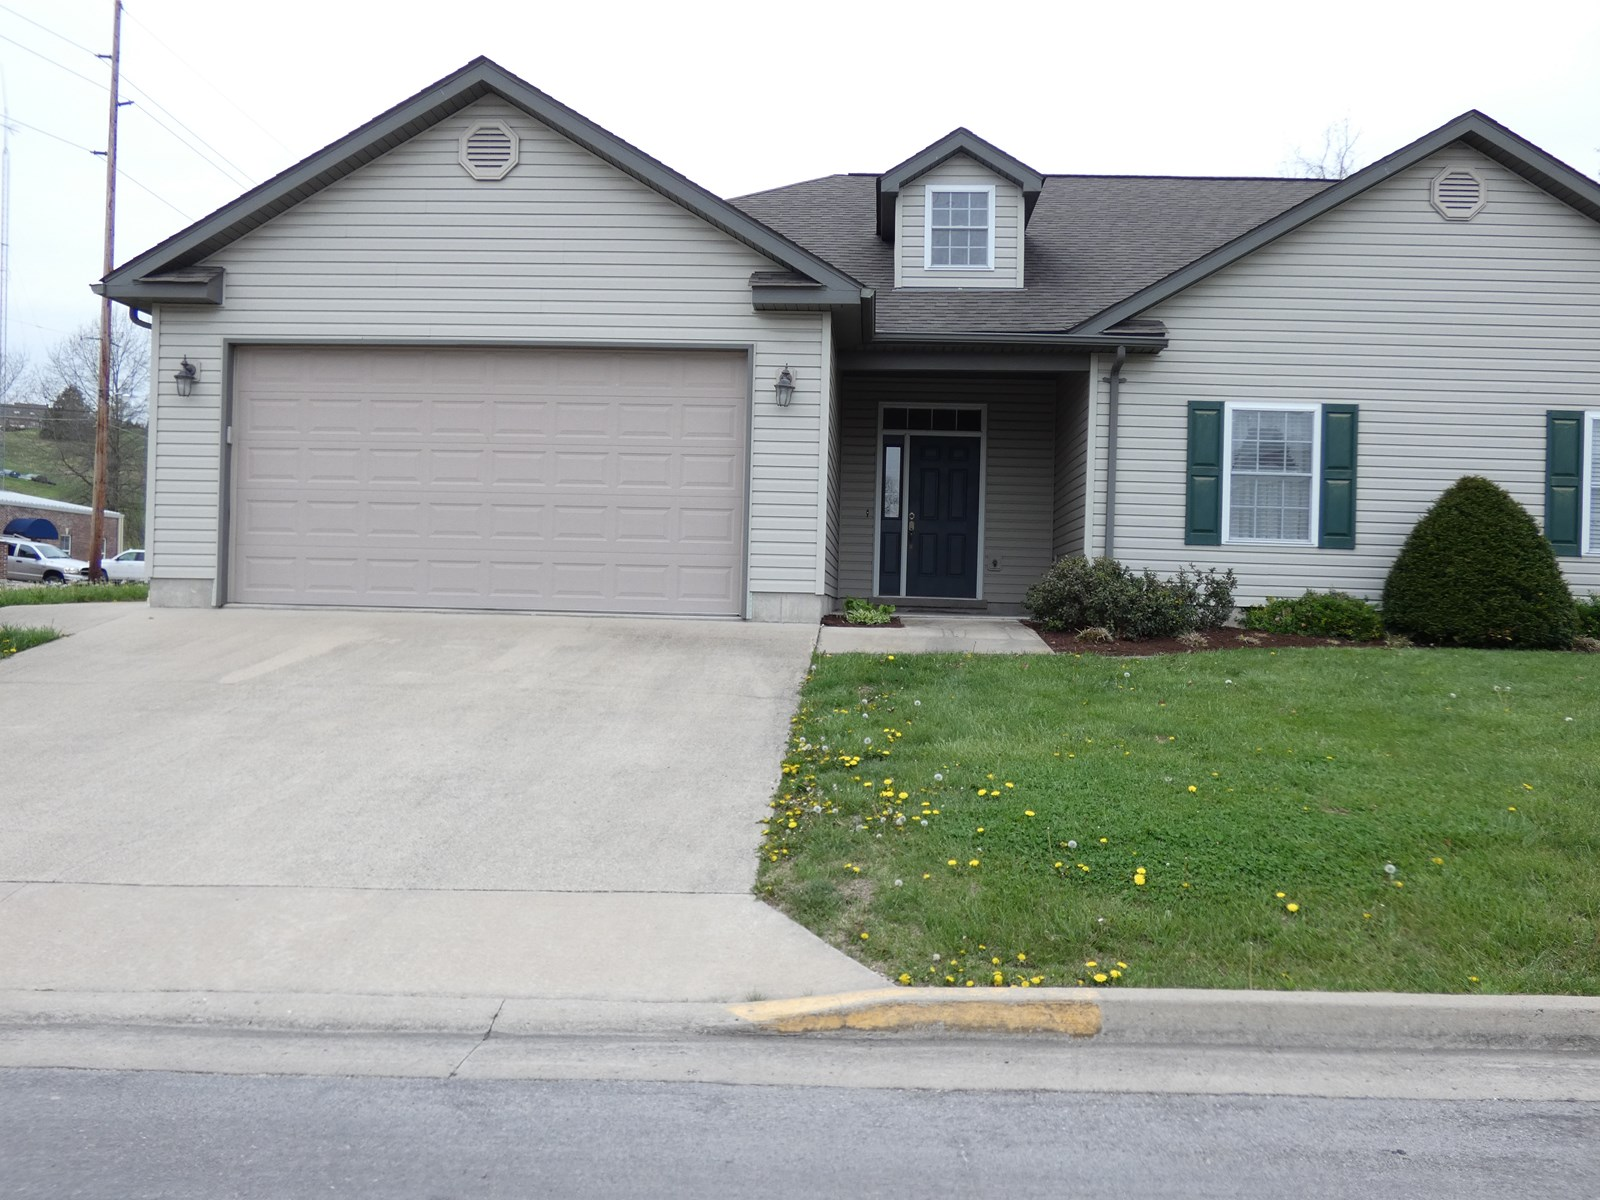 Low Maintenance Single Level Home For Sale in Hermann, MO